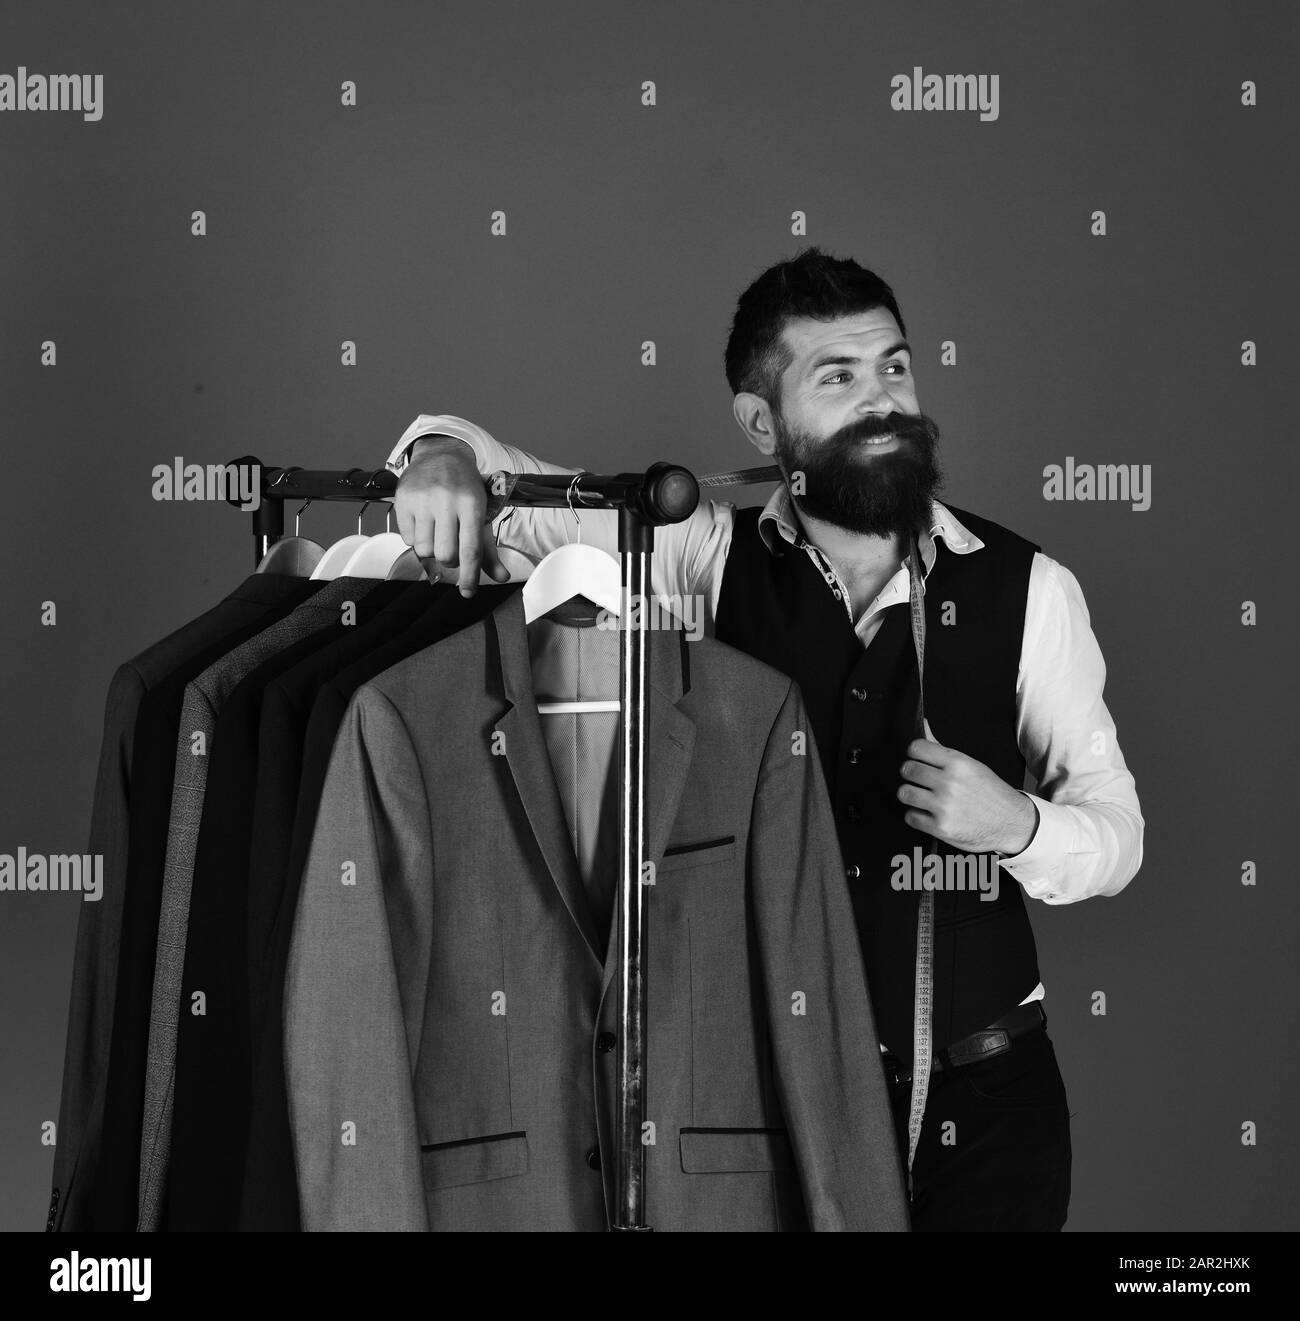 https www alamy com young tailor with tape measure near suit rack guy with beard and jackets on blue background tailoring and design concept image341192059 html